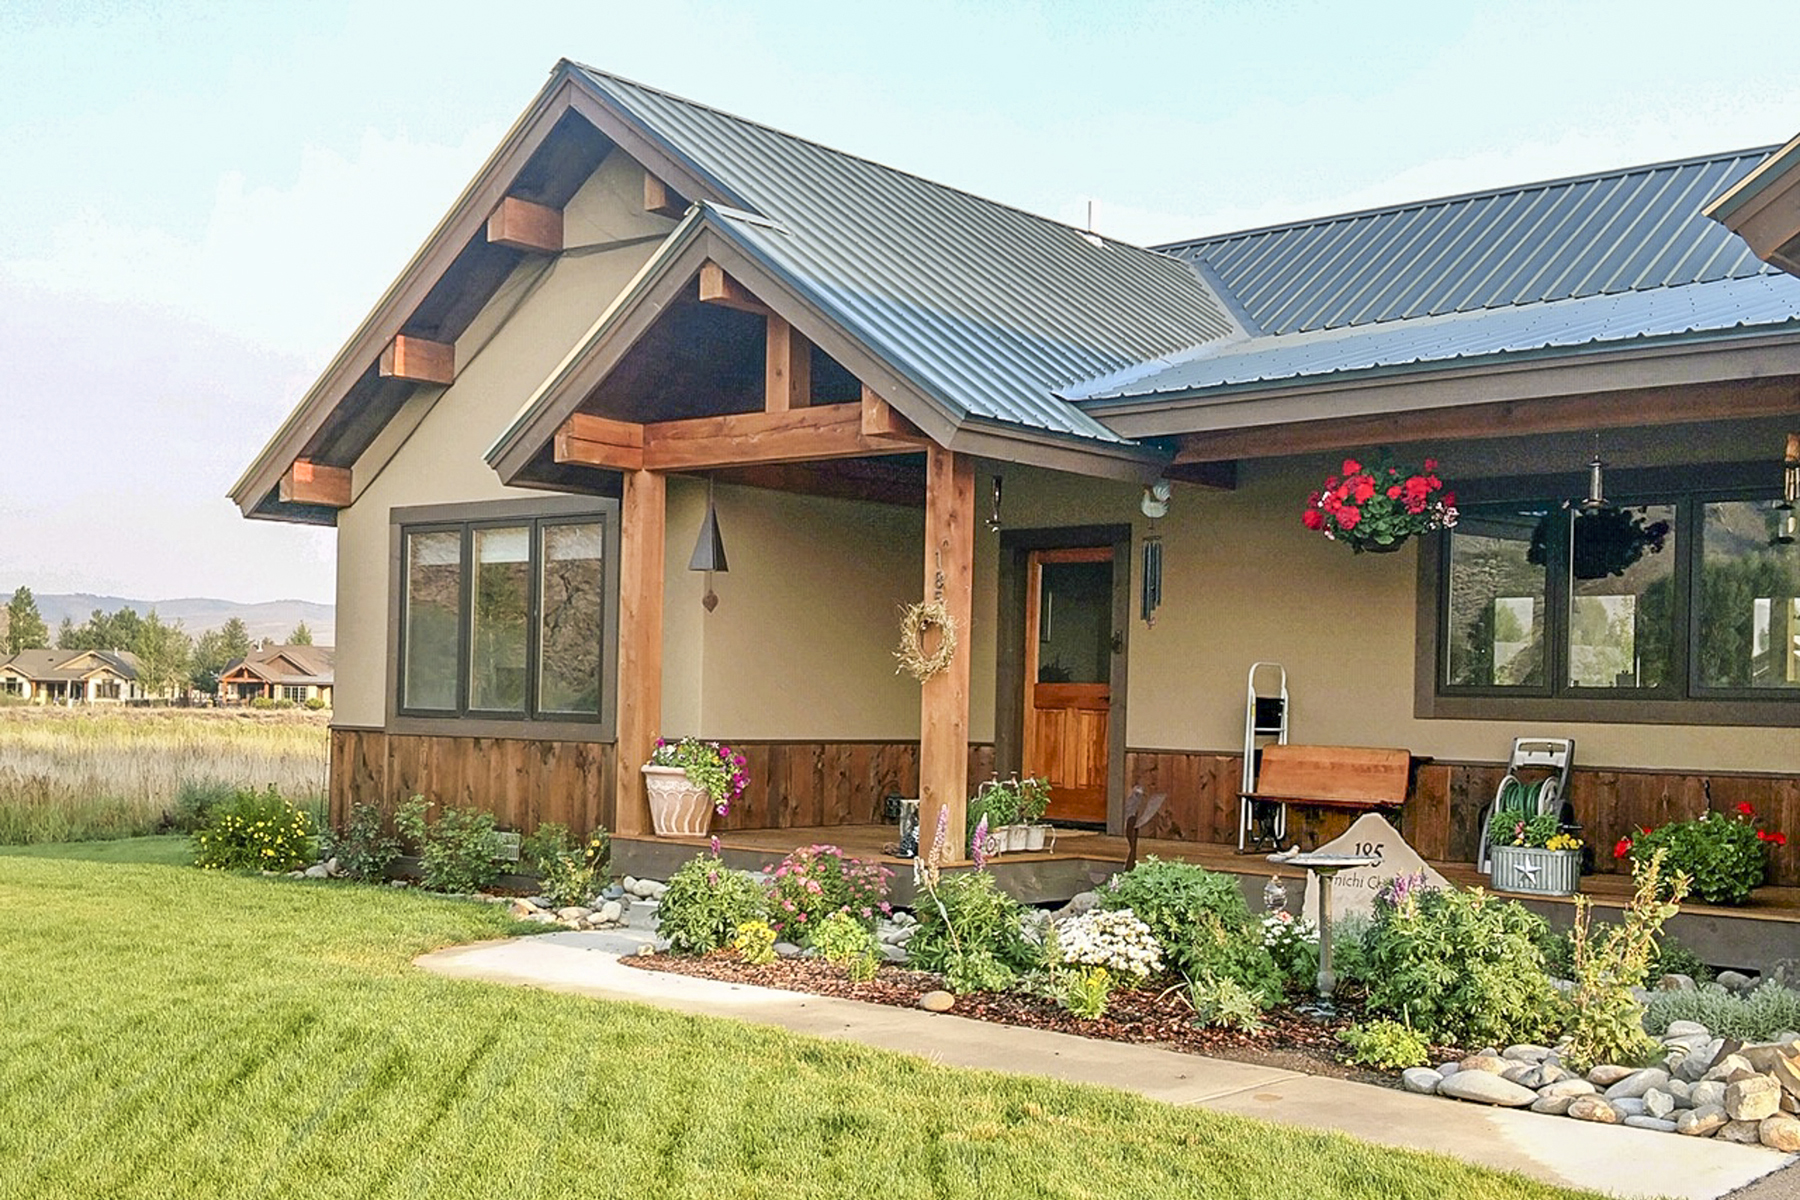 Single Family Home for Active at Private gated community and close to Dos Rios Golf Course 185 Tomichi Creek Loop Gunnison, Colorado 81230 United States